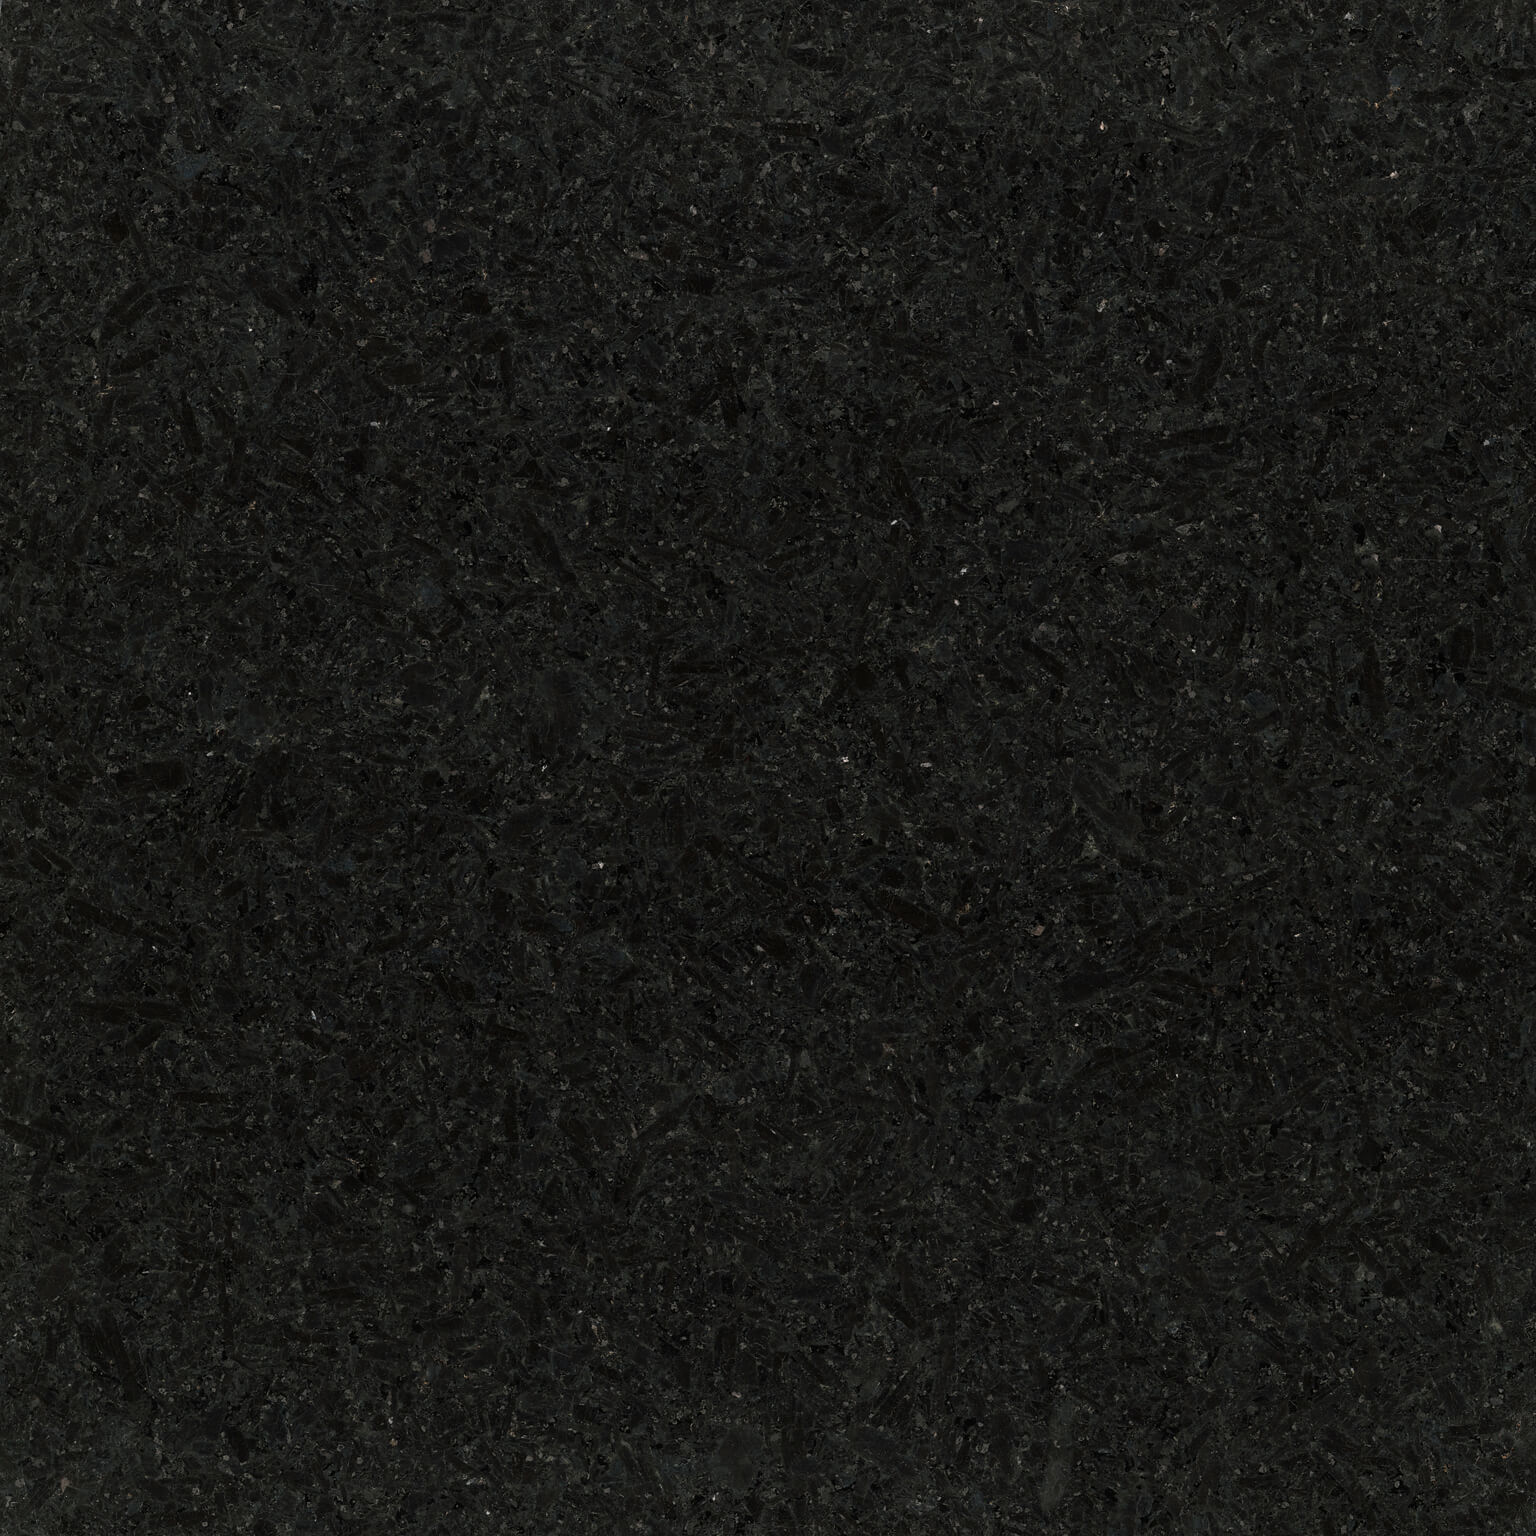 Cambrian Black Polycor Natural Stone North America